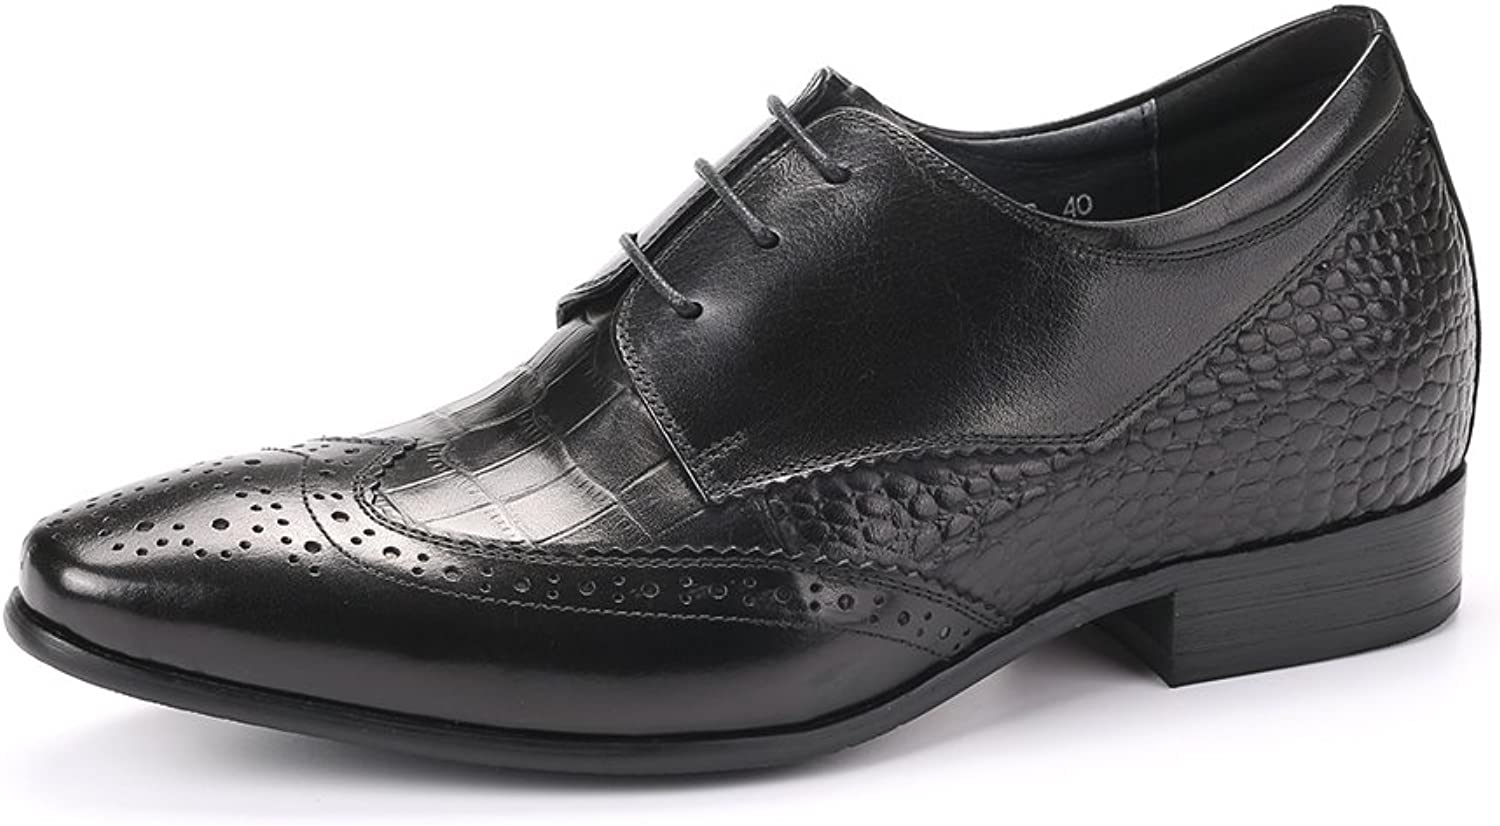 FARYM Men's European Brogue Derby Formal shoes in Real Leather